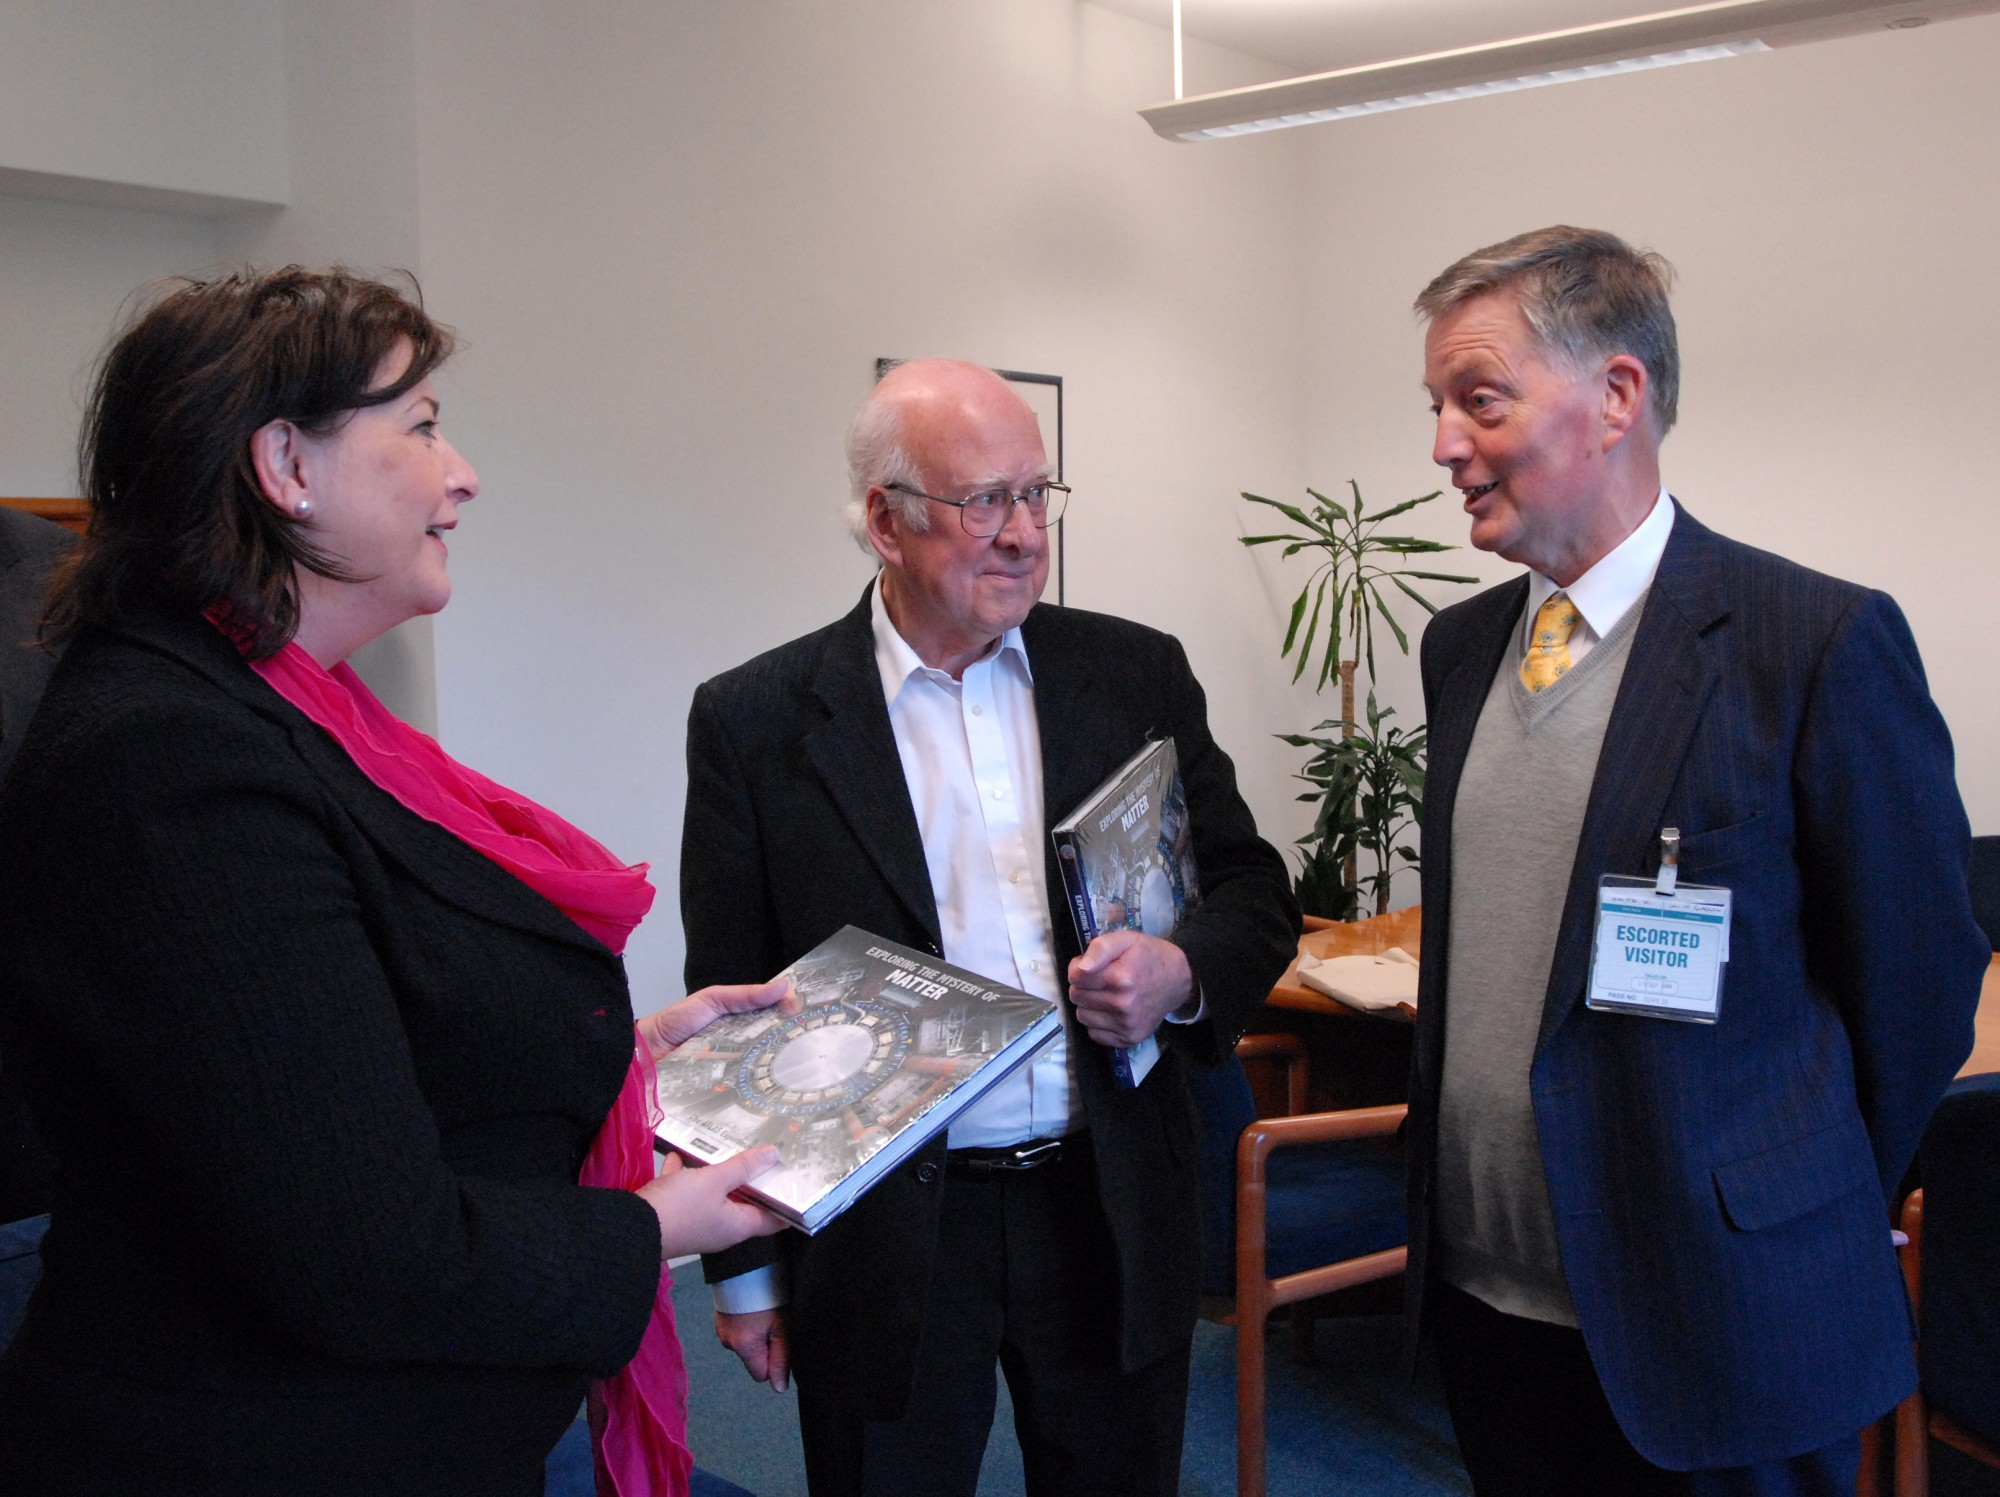 From left to right: Fiona Hyslop, Peter Higgs and Ken Smith. Ken Smith has just presented copies of 'Exploring the Mystery of Matter' to Peter and Fiona.